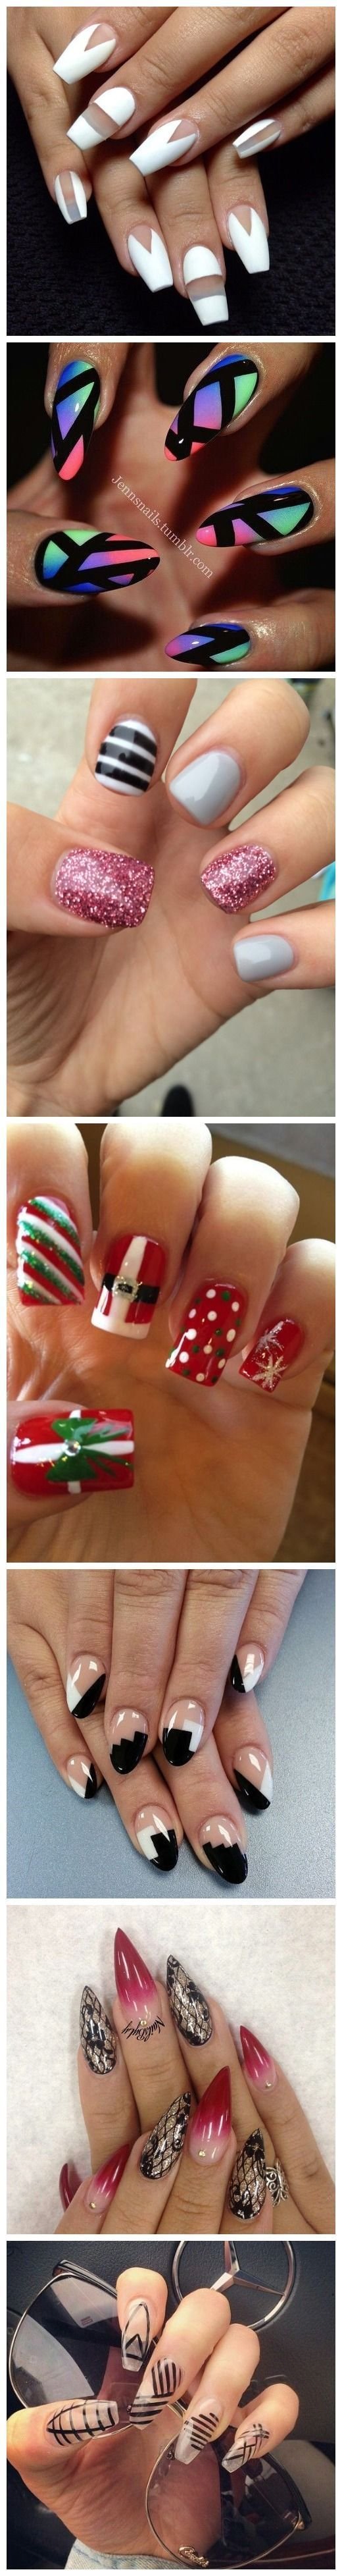 508 best Beauty - Nails images on Pinterest | Cute nails, Nail ...